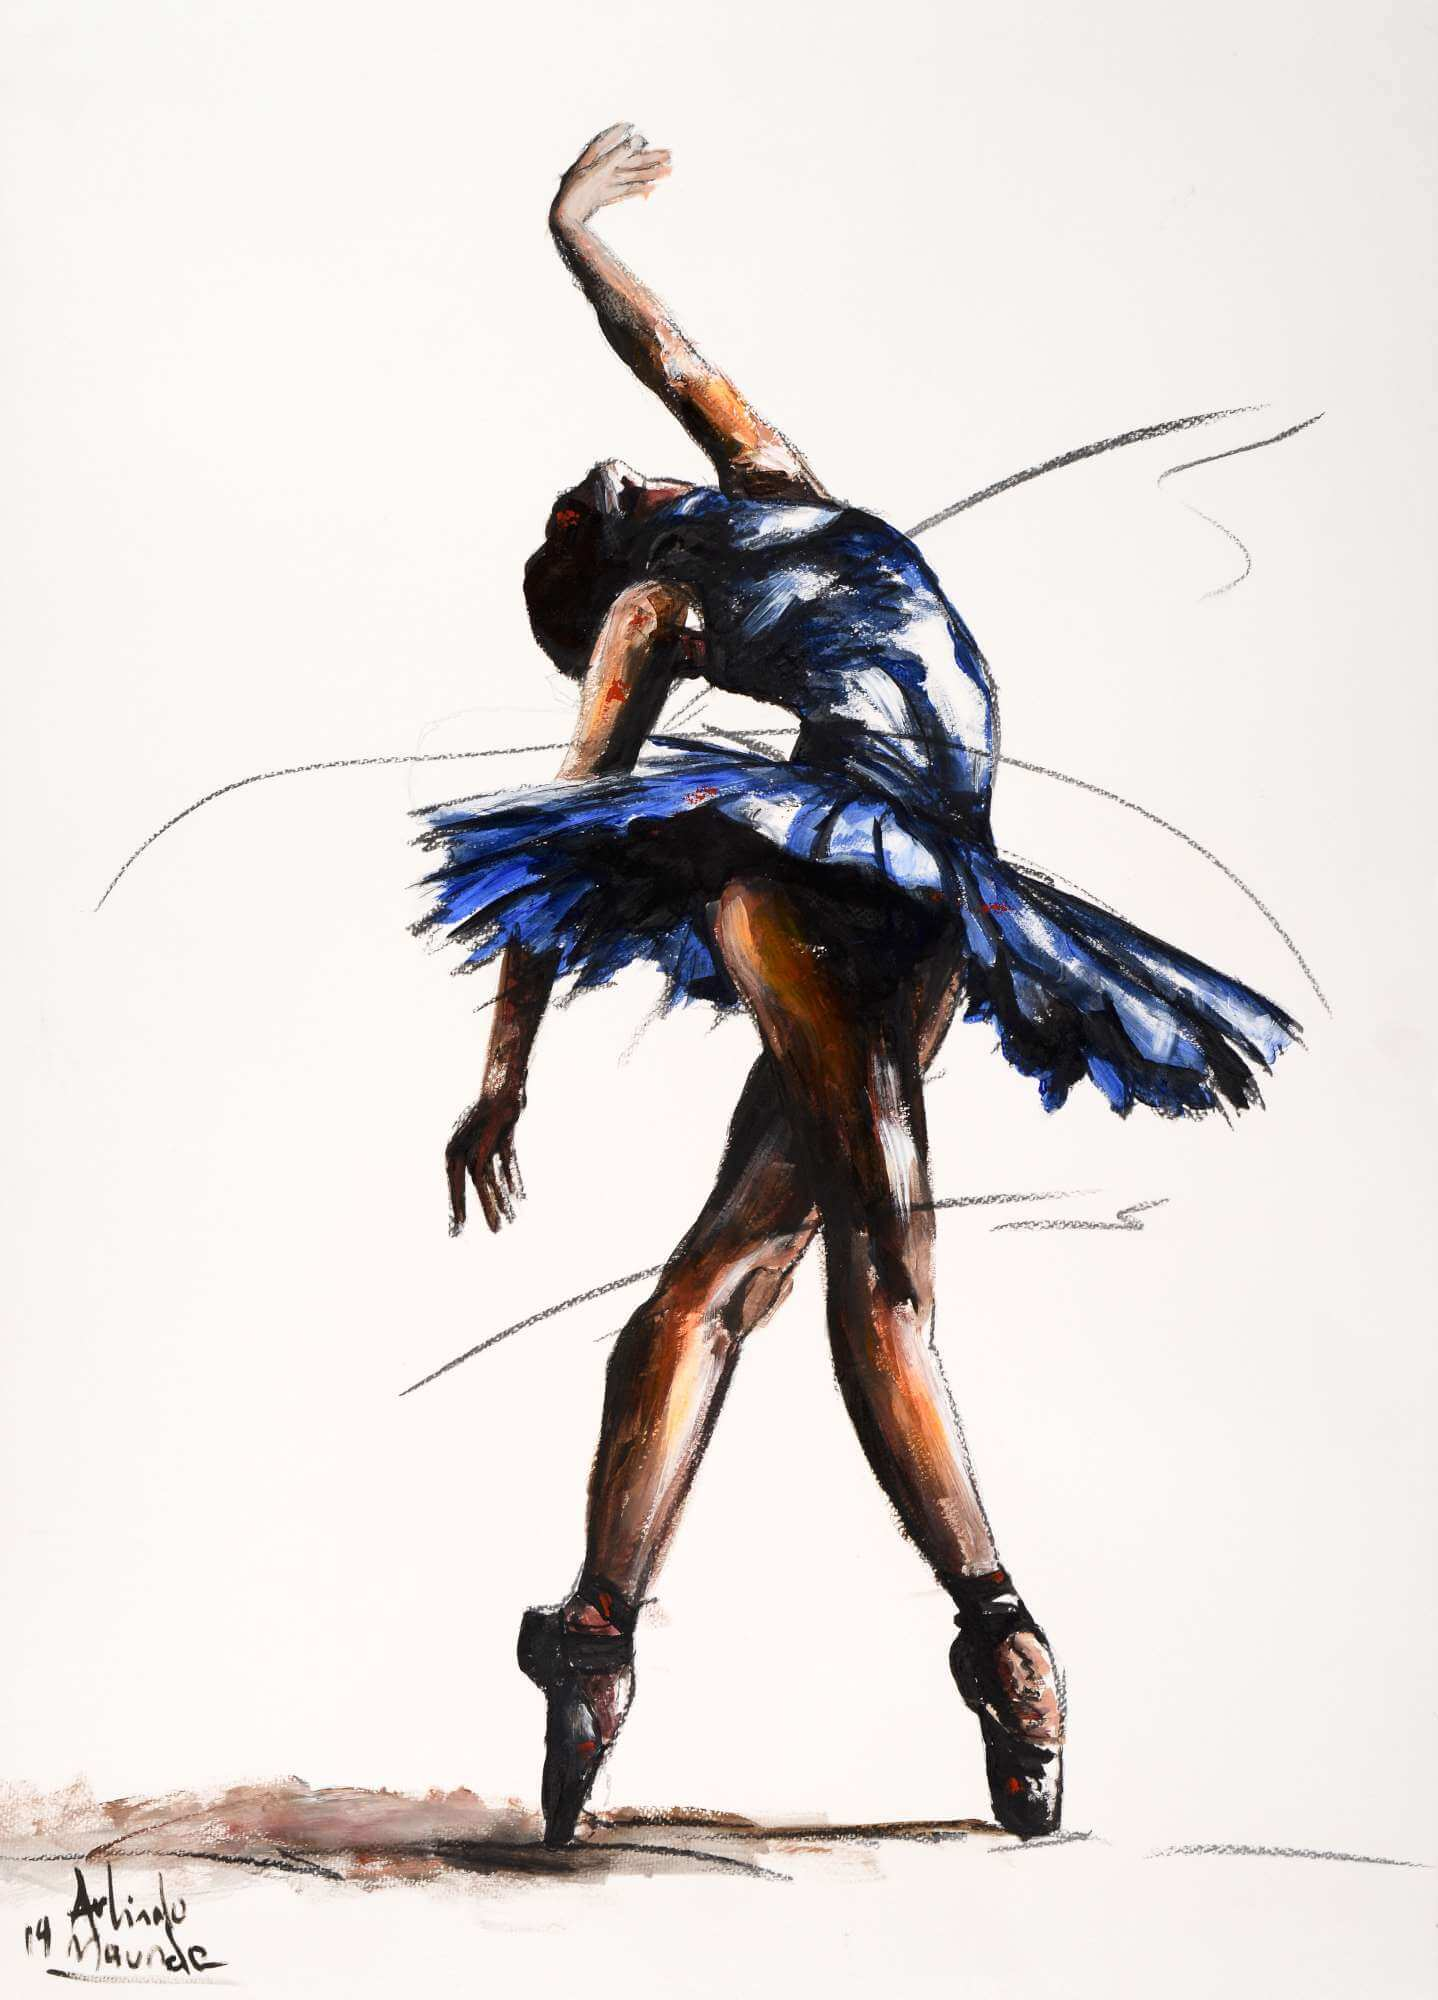 Ballet dancer wearing a blue tutu standing in position on pointed toes